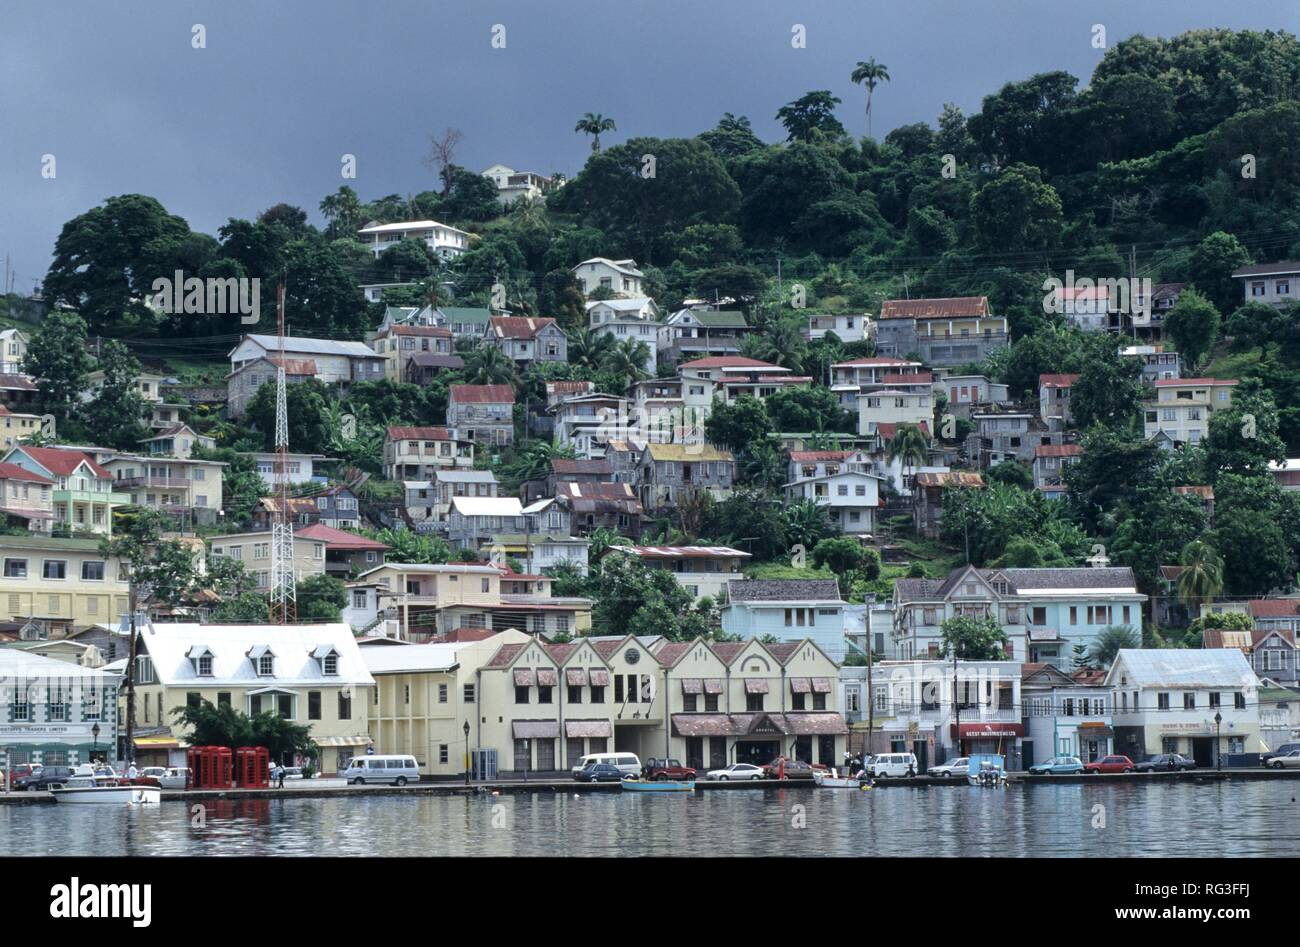 GRD, Grenada: the skyline of St. George's, the capital of Grenada. - Stock Image